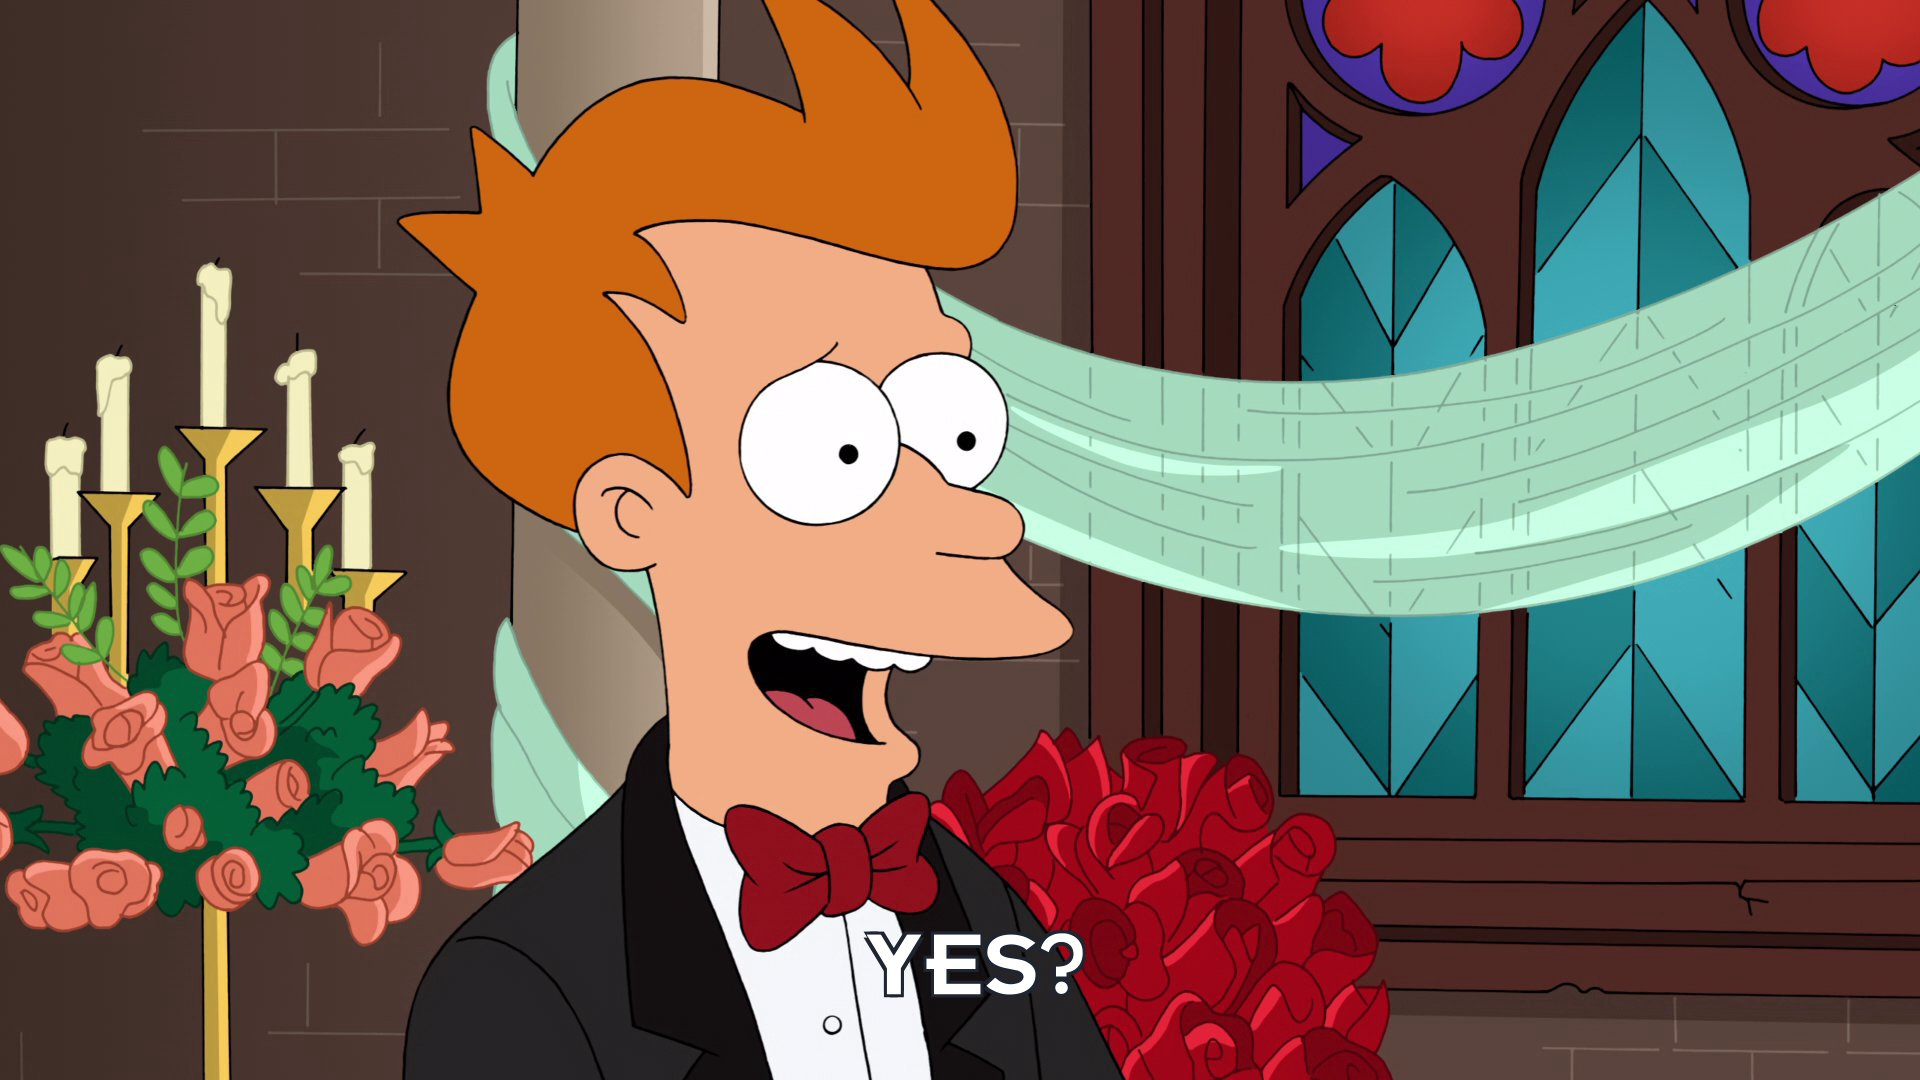 Philip J Fry: Yes?